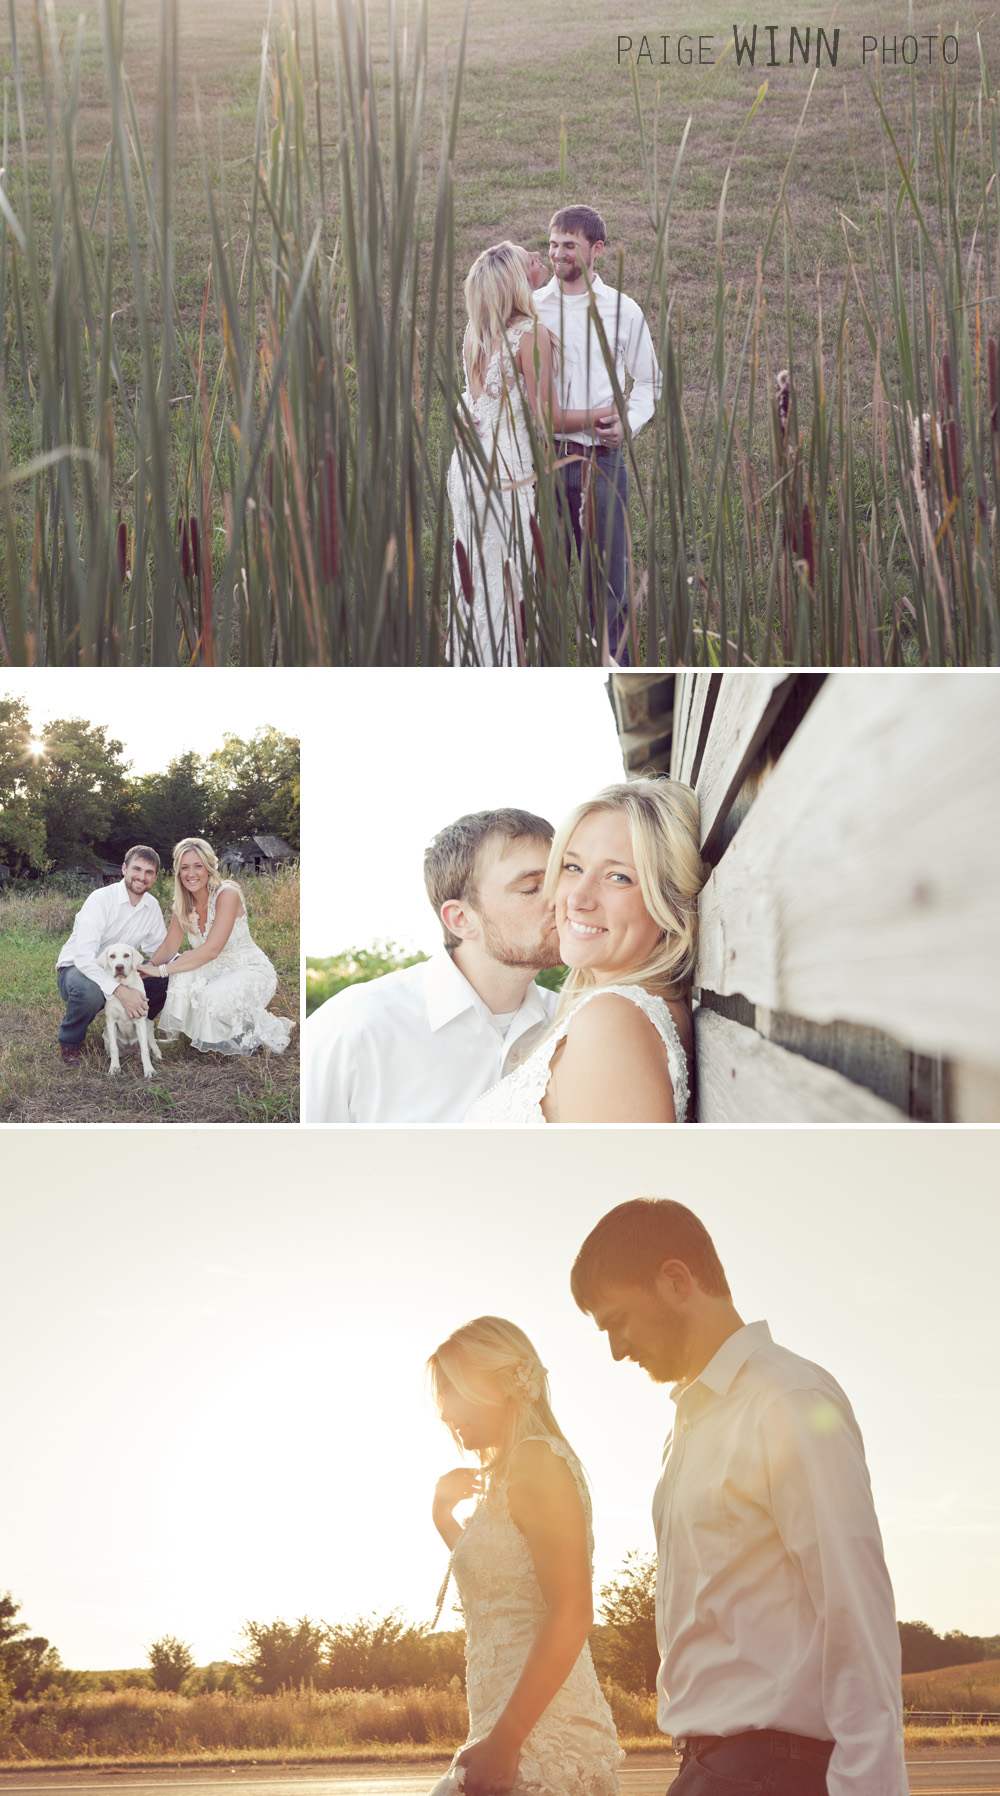 Rustic Newlywed Session by Paige Winn Photo